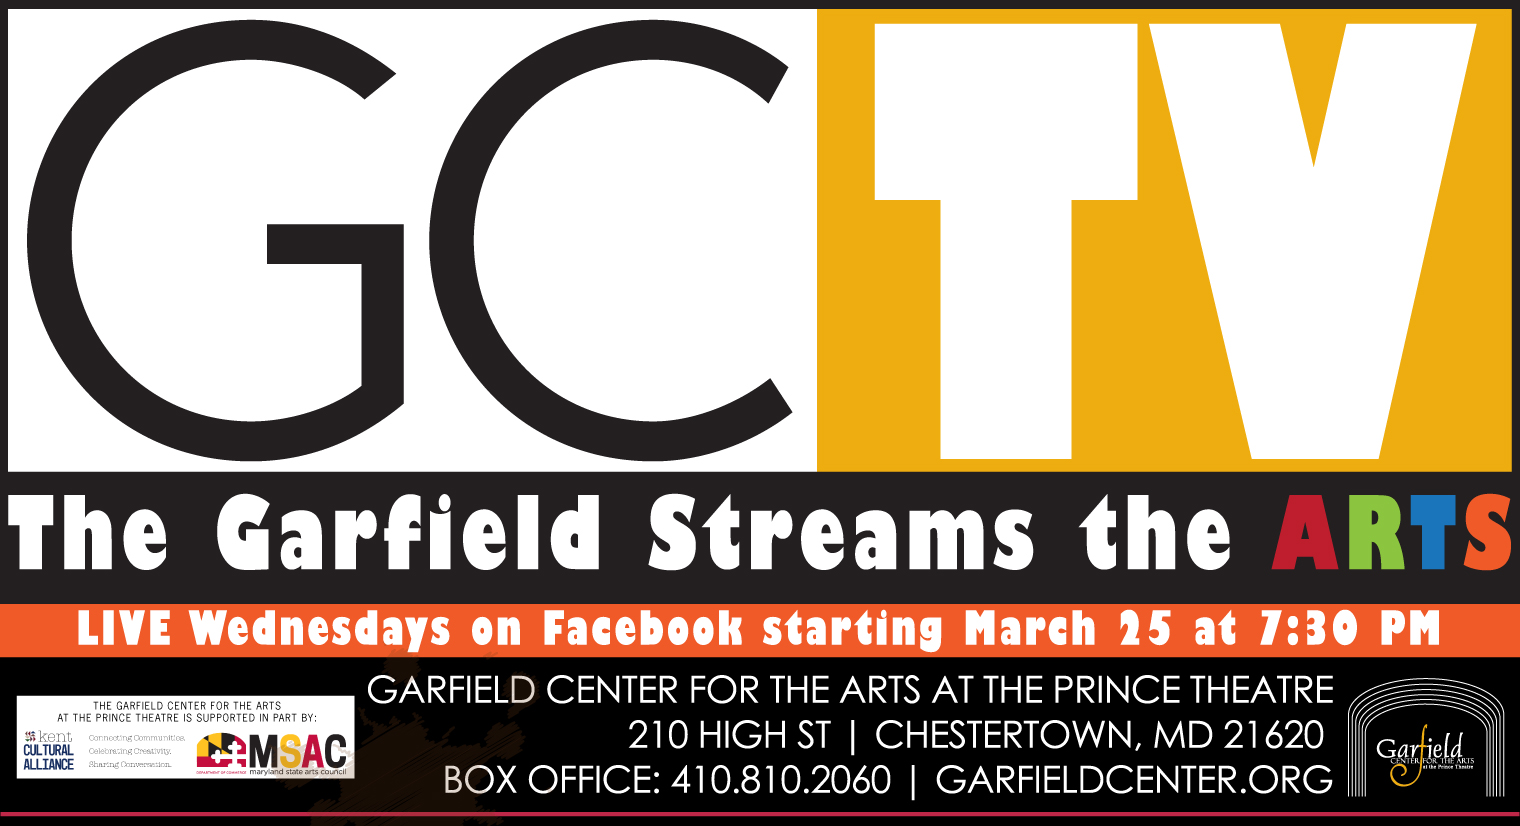 GCTV - The Garfield Streams the Arts!